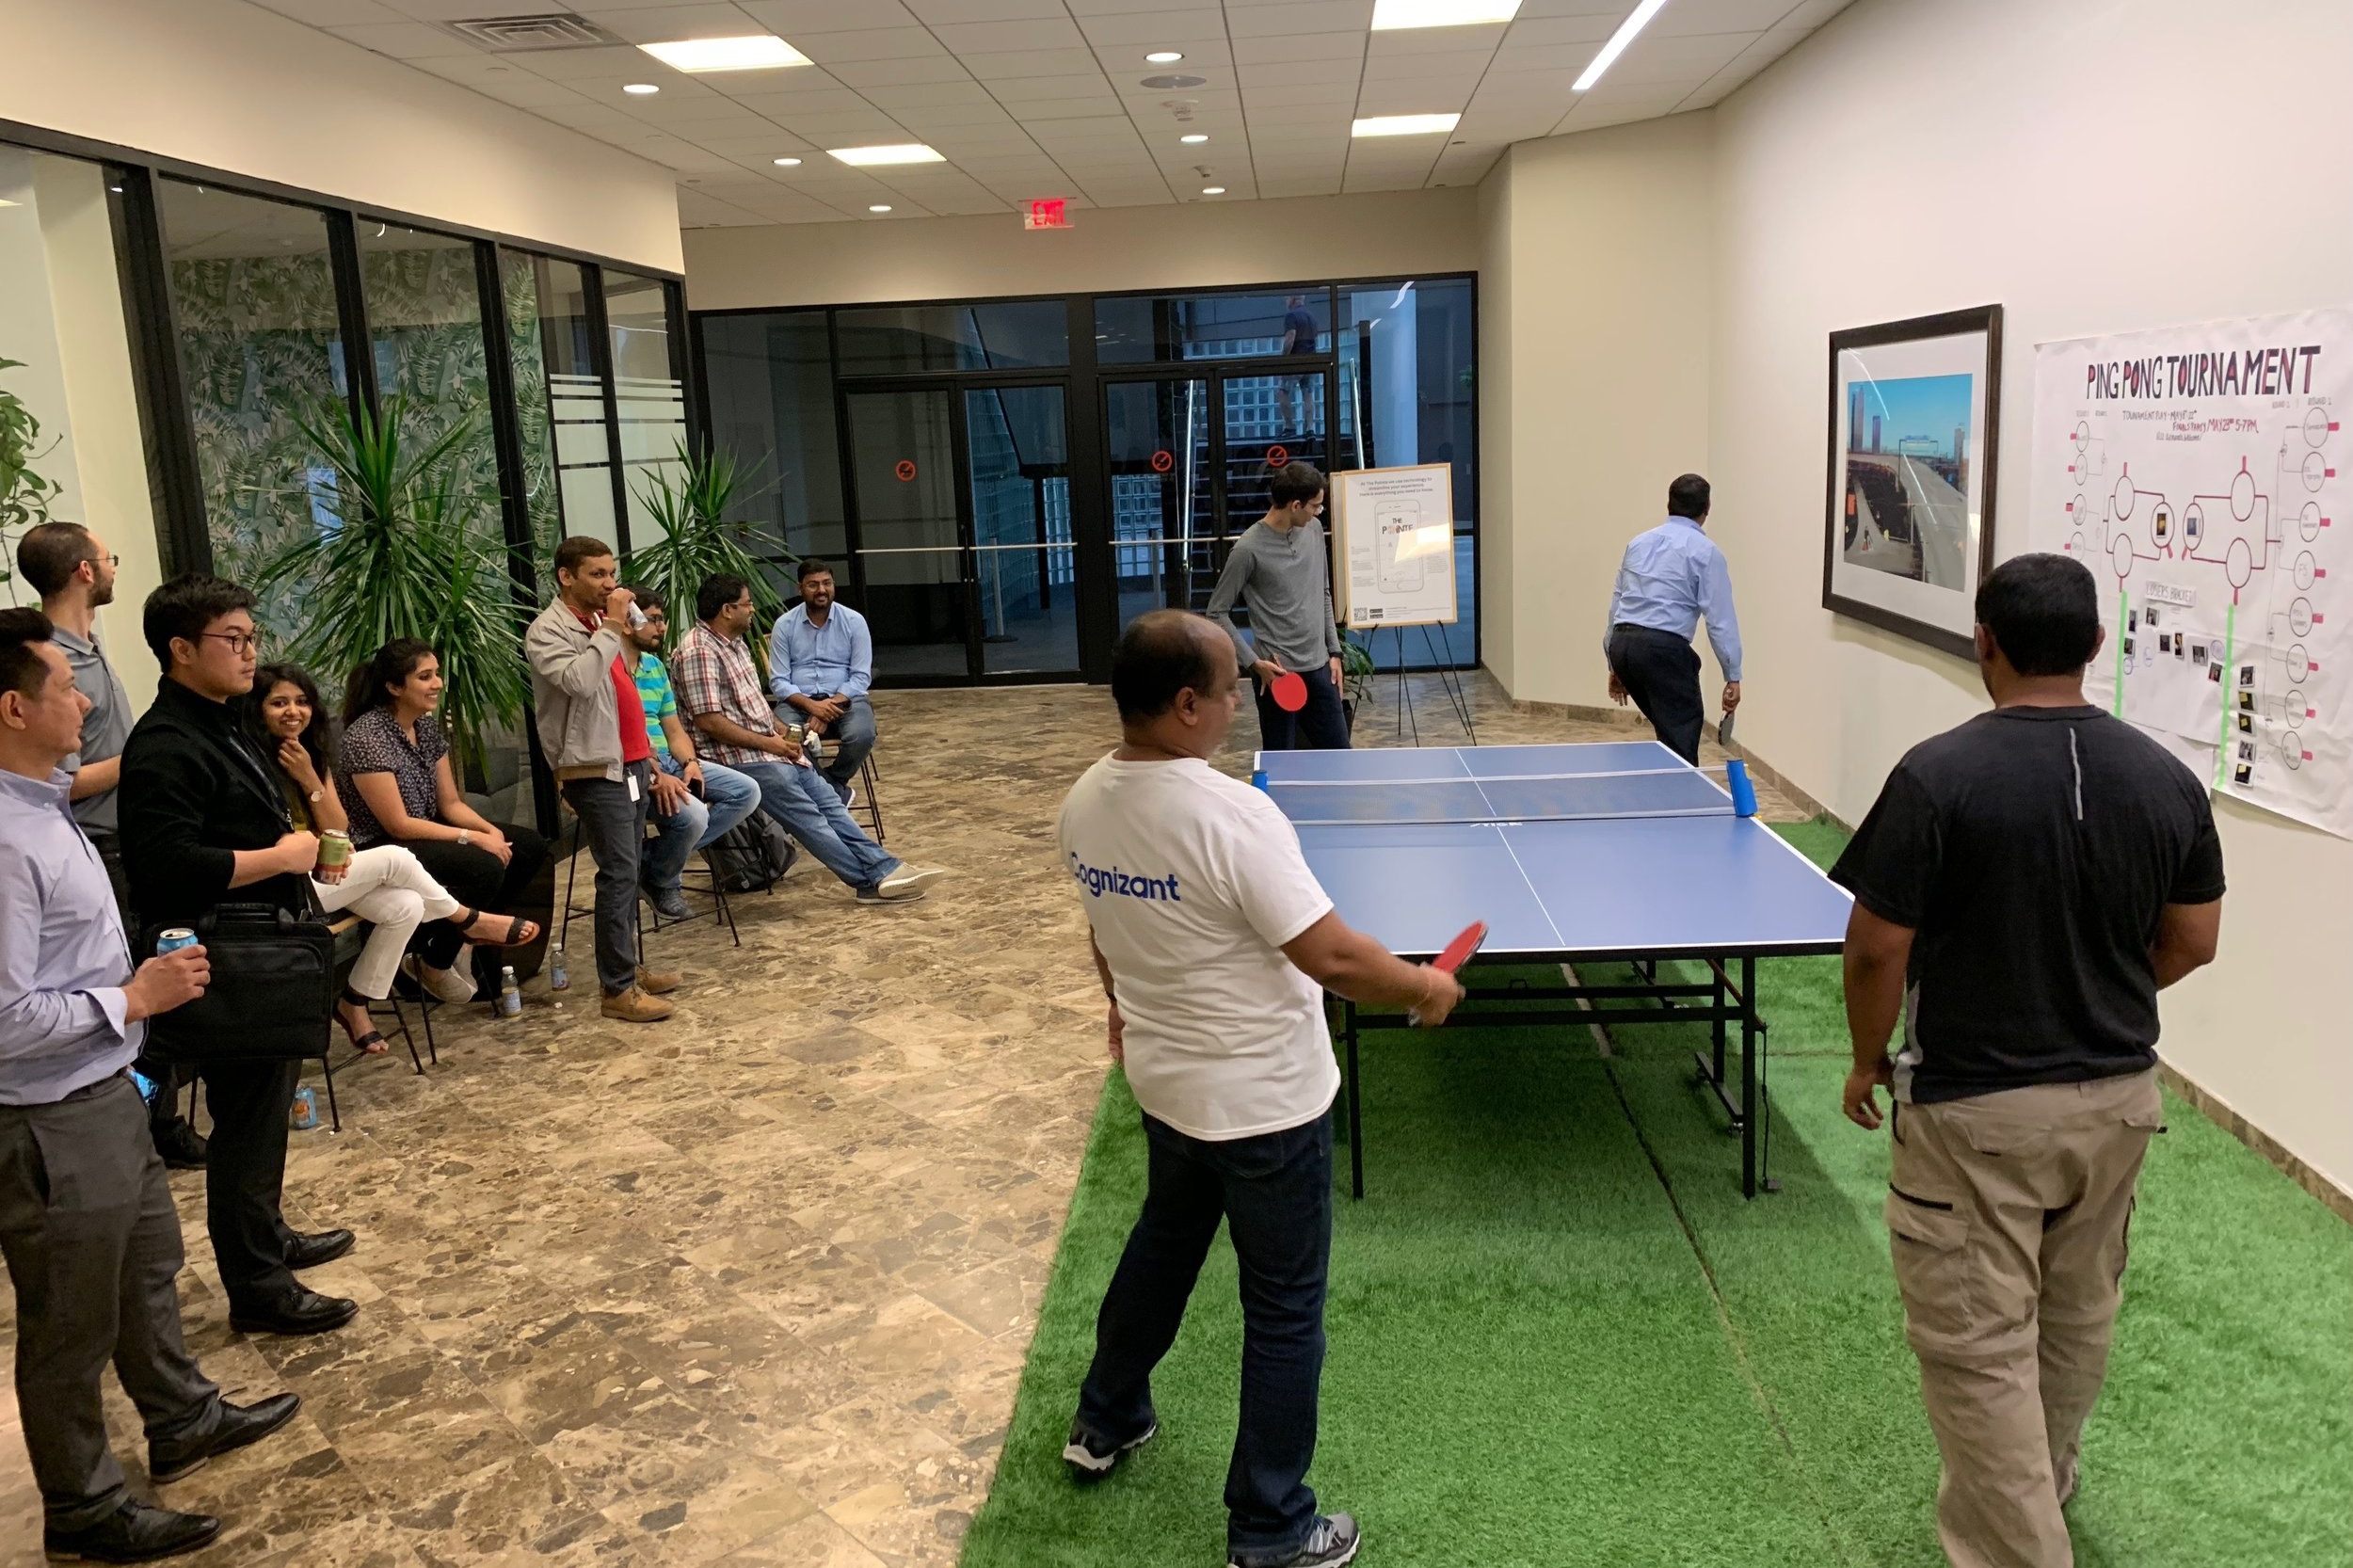 Community Events for All Tenants   We host Monthly Events at The Pointe for all tenants to socialize, meet new people, play and relax. Some favorite events are : the P ing Pong Tournament, Tenant Art Show, Scavenger Hunt, Karaoke Night, Pool Party  and more!